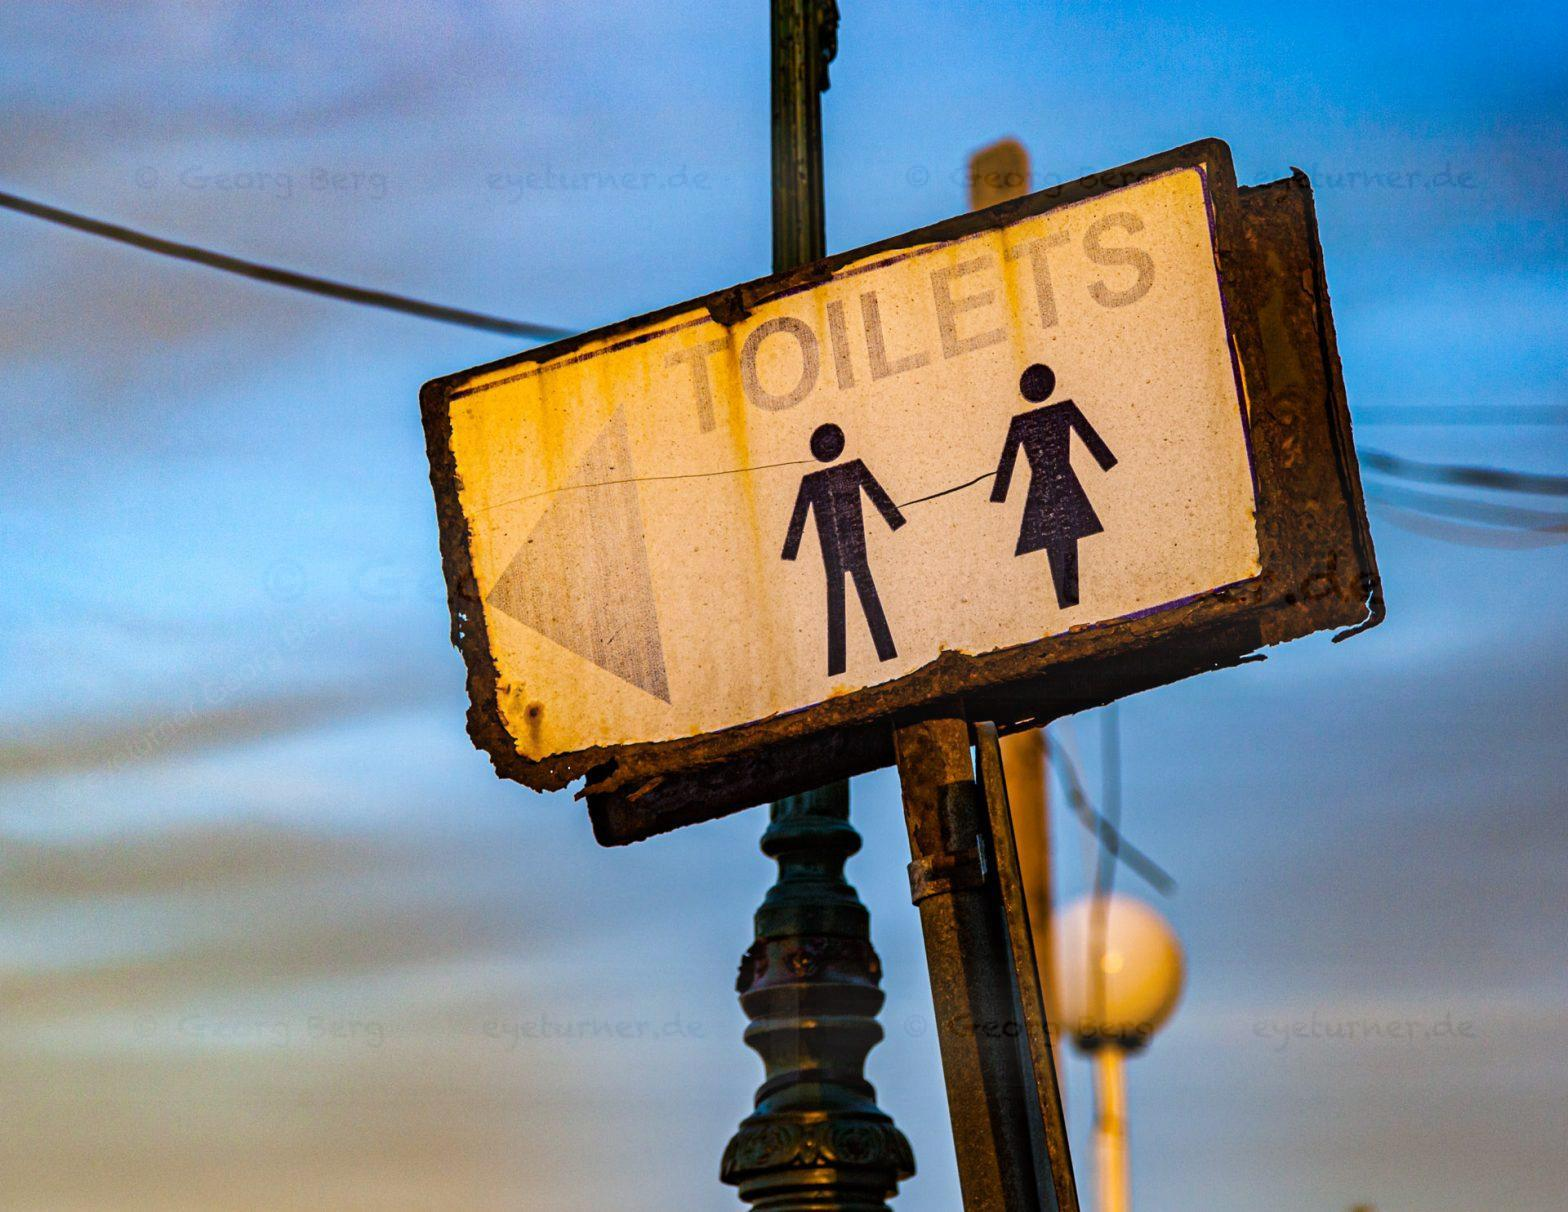 Signpost to Toilets in Malta